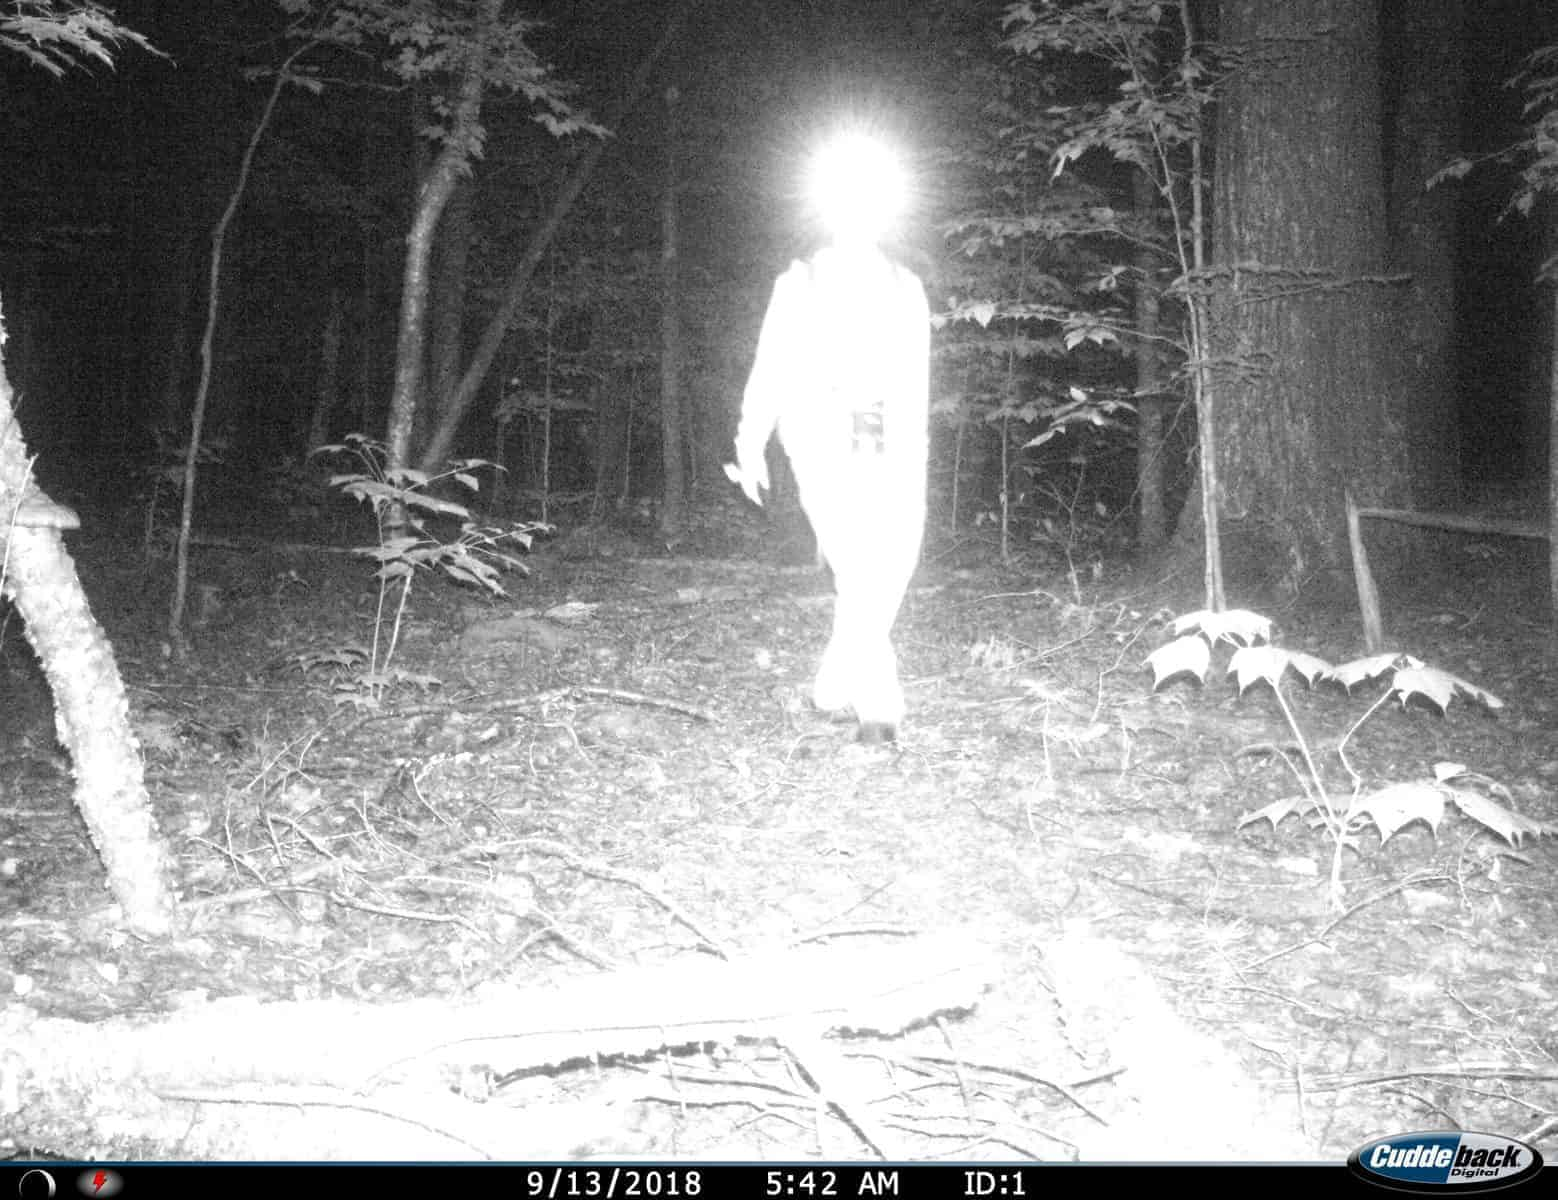 Scouting for Deer, Deer Season, Trail Cameras, Vermont, New Hampshire